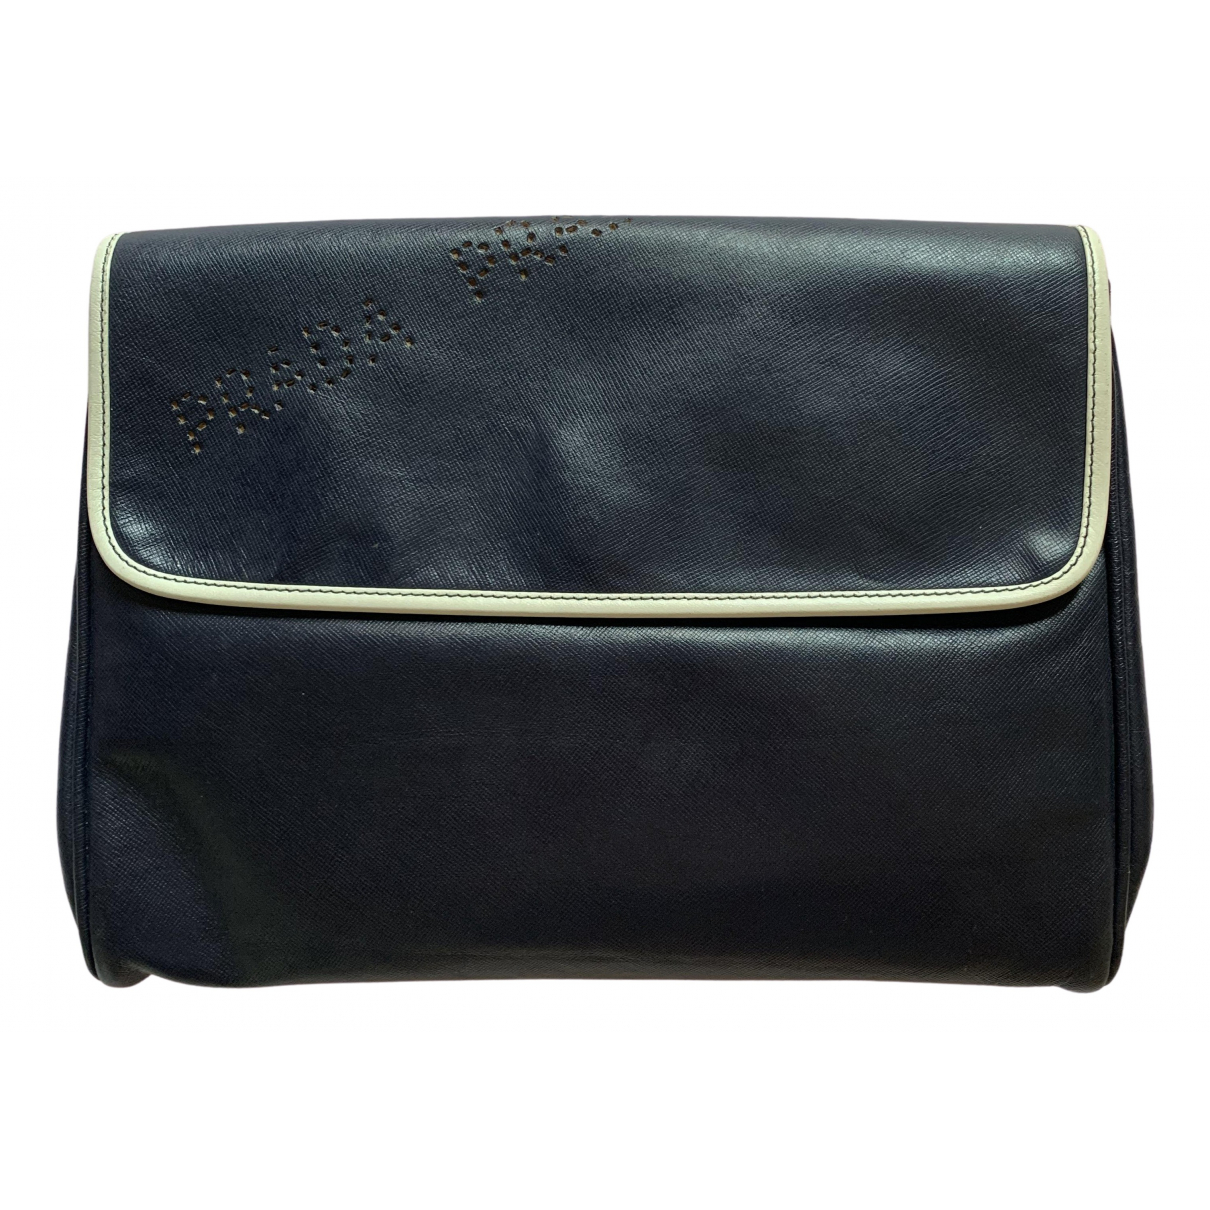 Prada \N Clutch in  Blau Leder